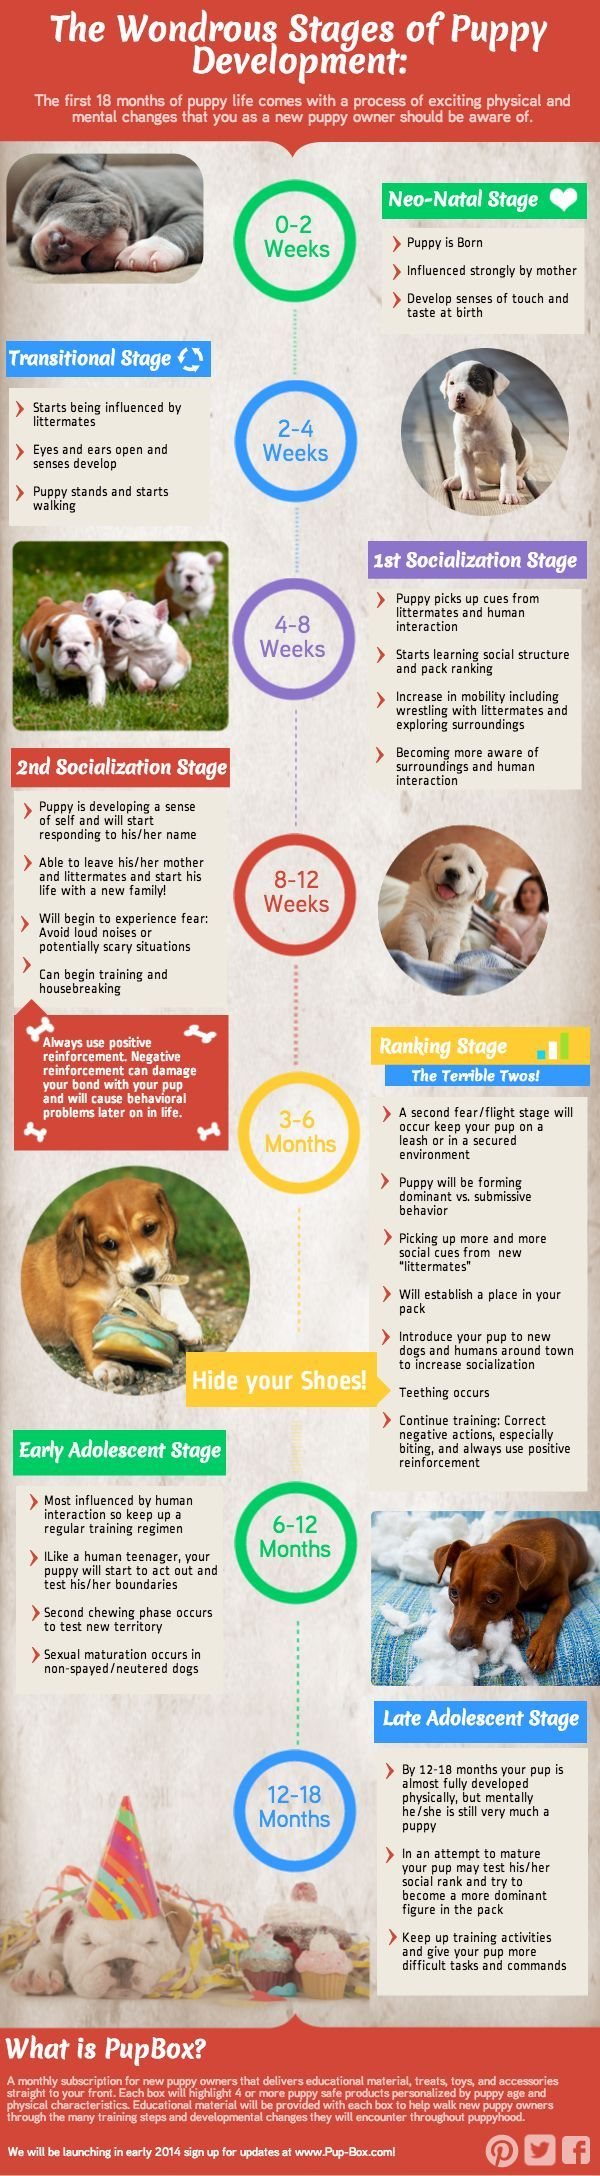 The Wondrous Stages Of Puppy Development #Dogs #Puppy